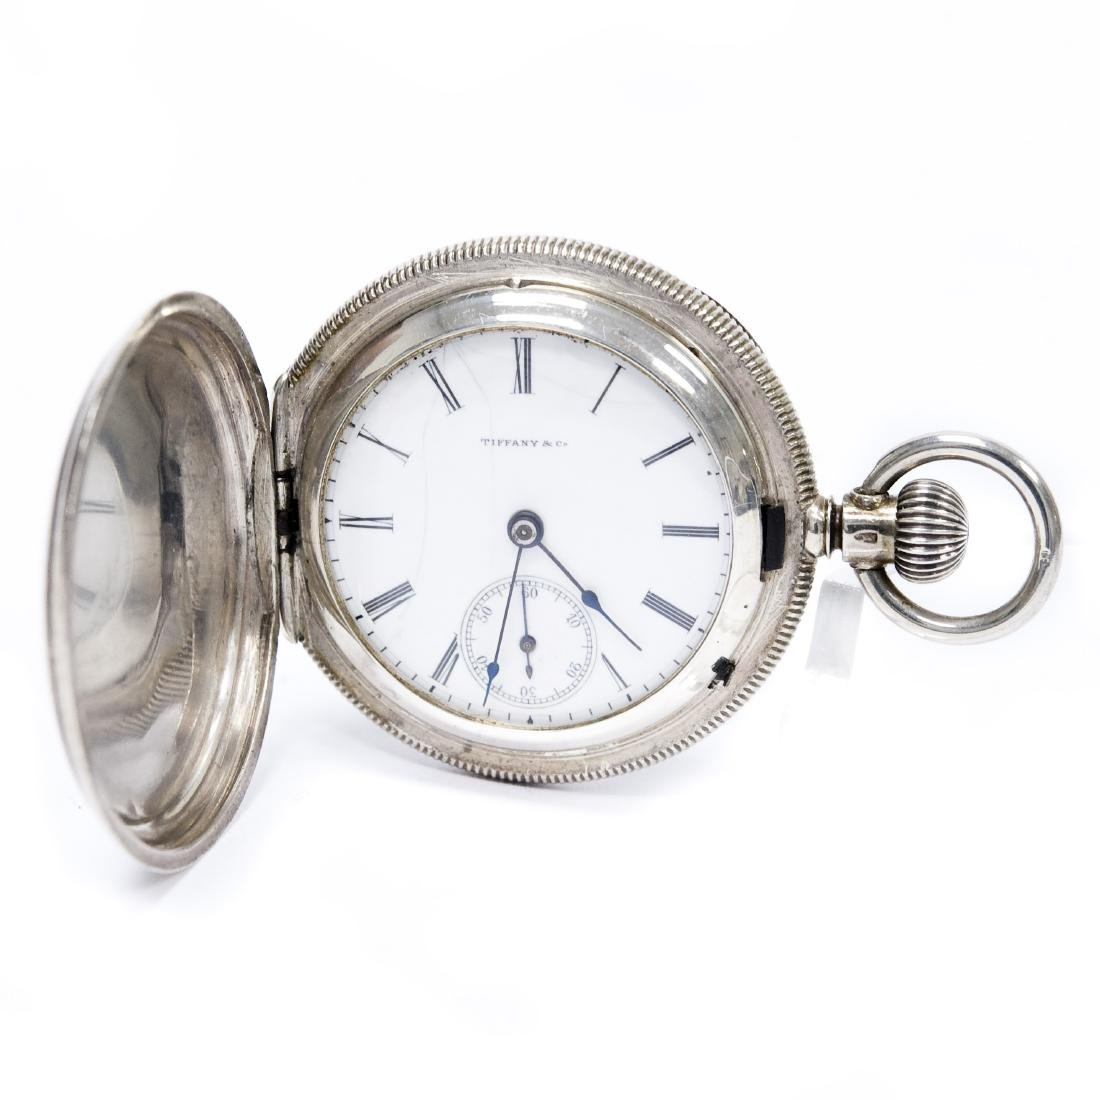 Tiffany & Co. Sterling Silver Pocket Watch.